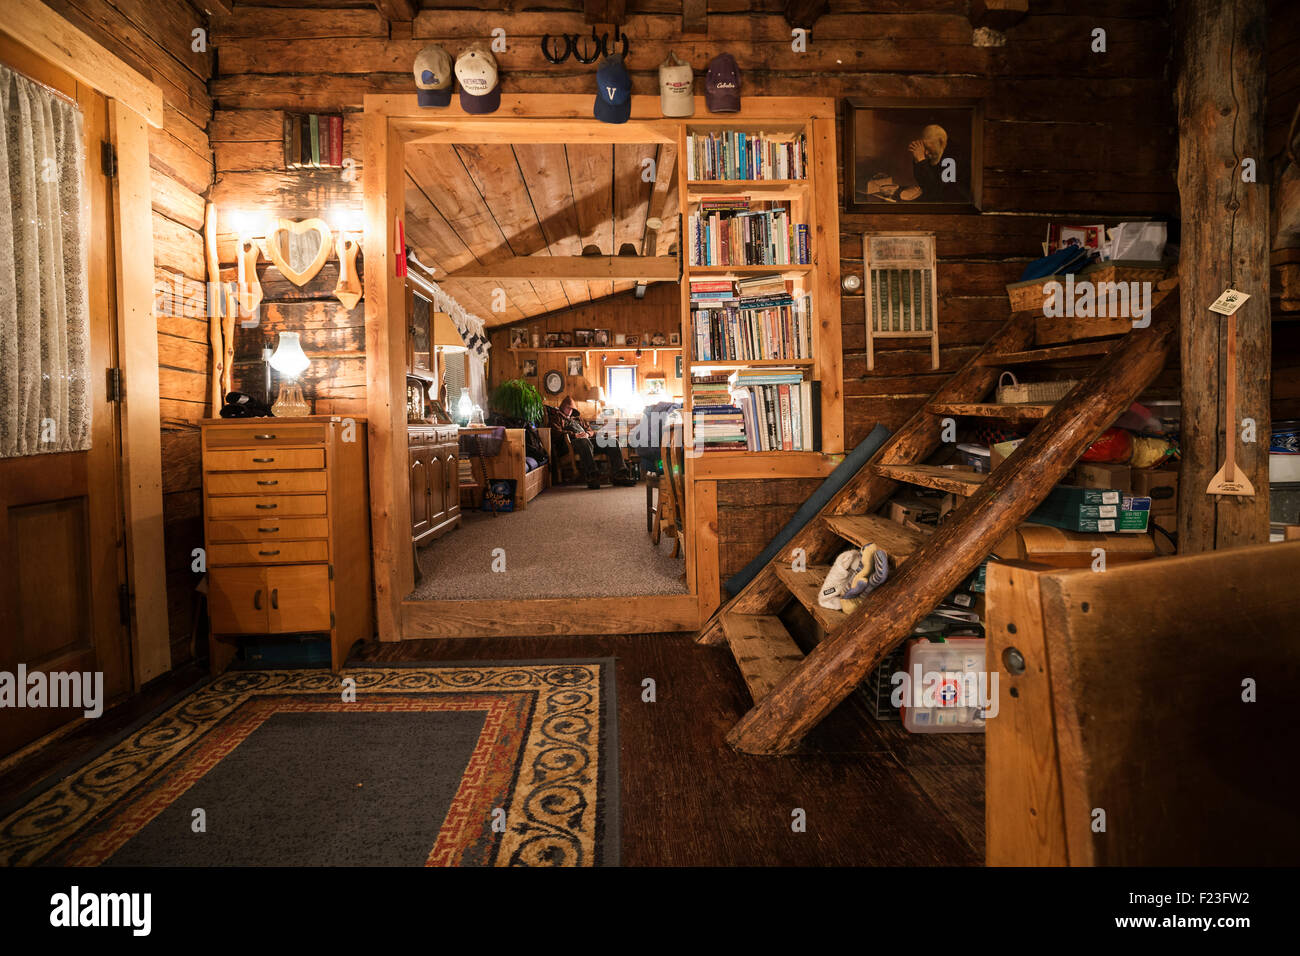 Log cabin on the Gunflint Trail in northern Minnesota, USA - Stock Image